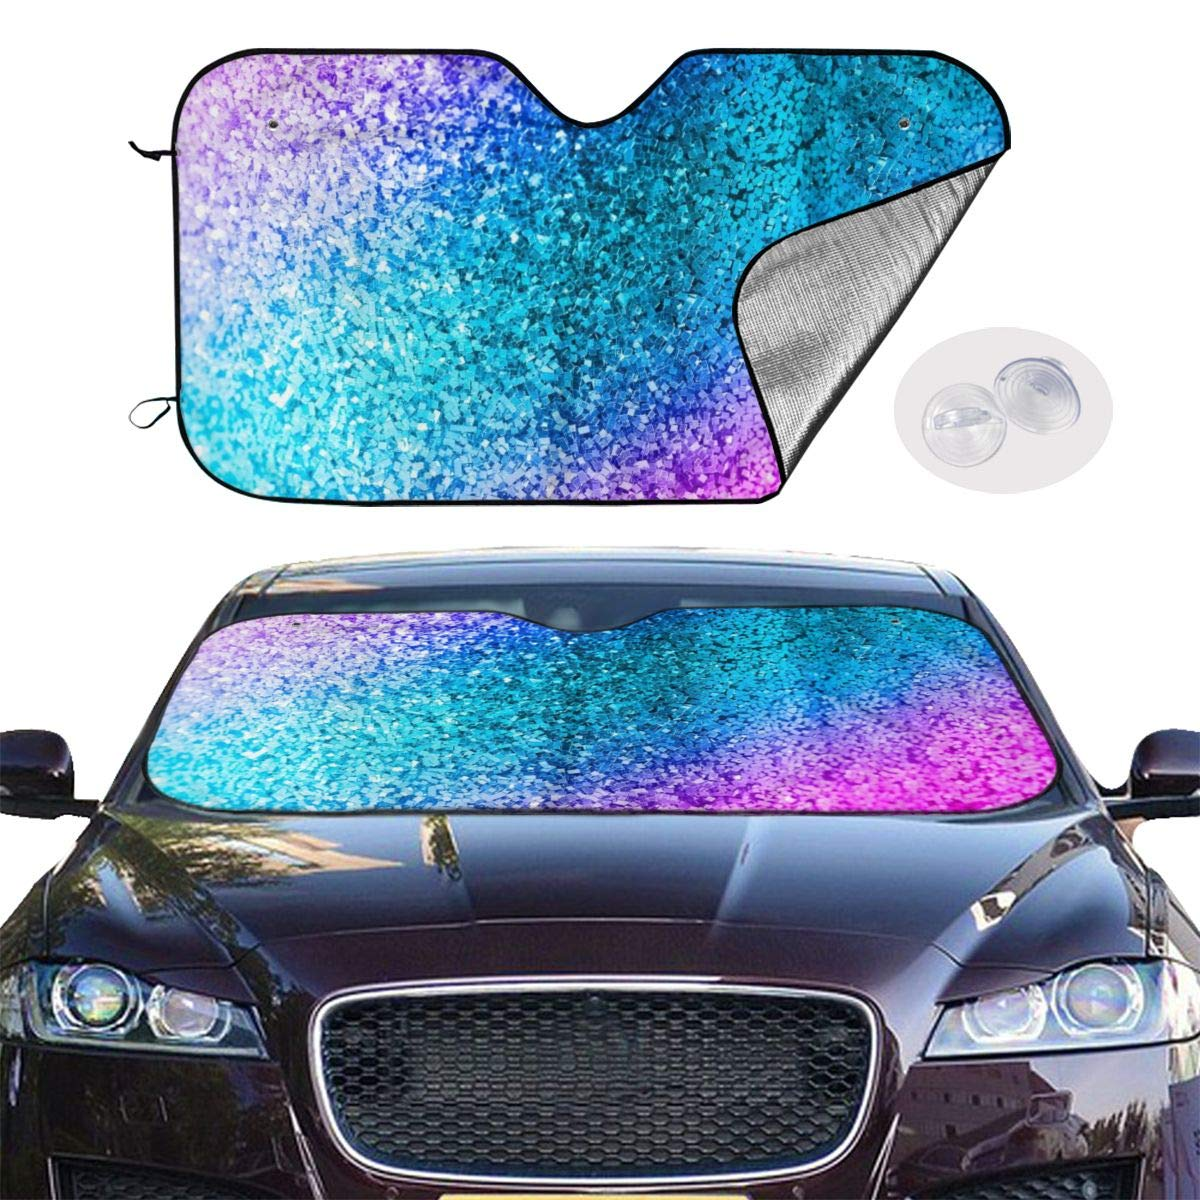 Colorful Glitter Car Windshield Sun Shade - Blocks UV Rays Sun Visor Protector, Sunshade to Keep Your Vehicle Cool and Damage Free,Easy to Use, Universal Size (M 55x30 Inches) by HE - Fashion